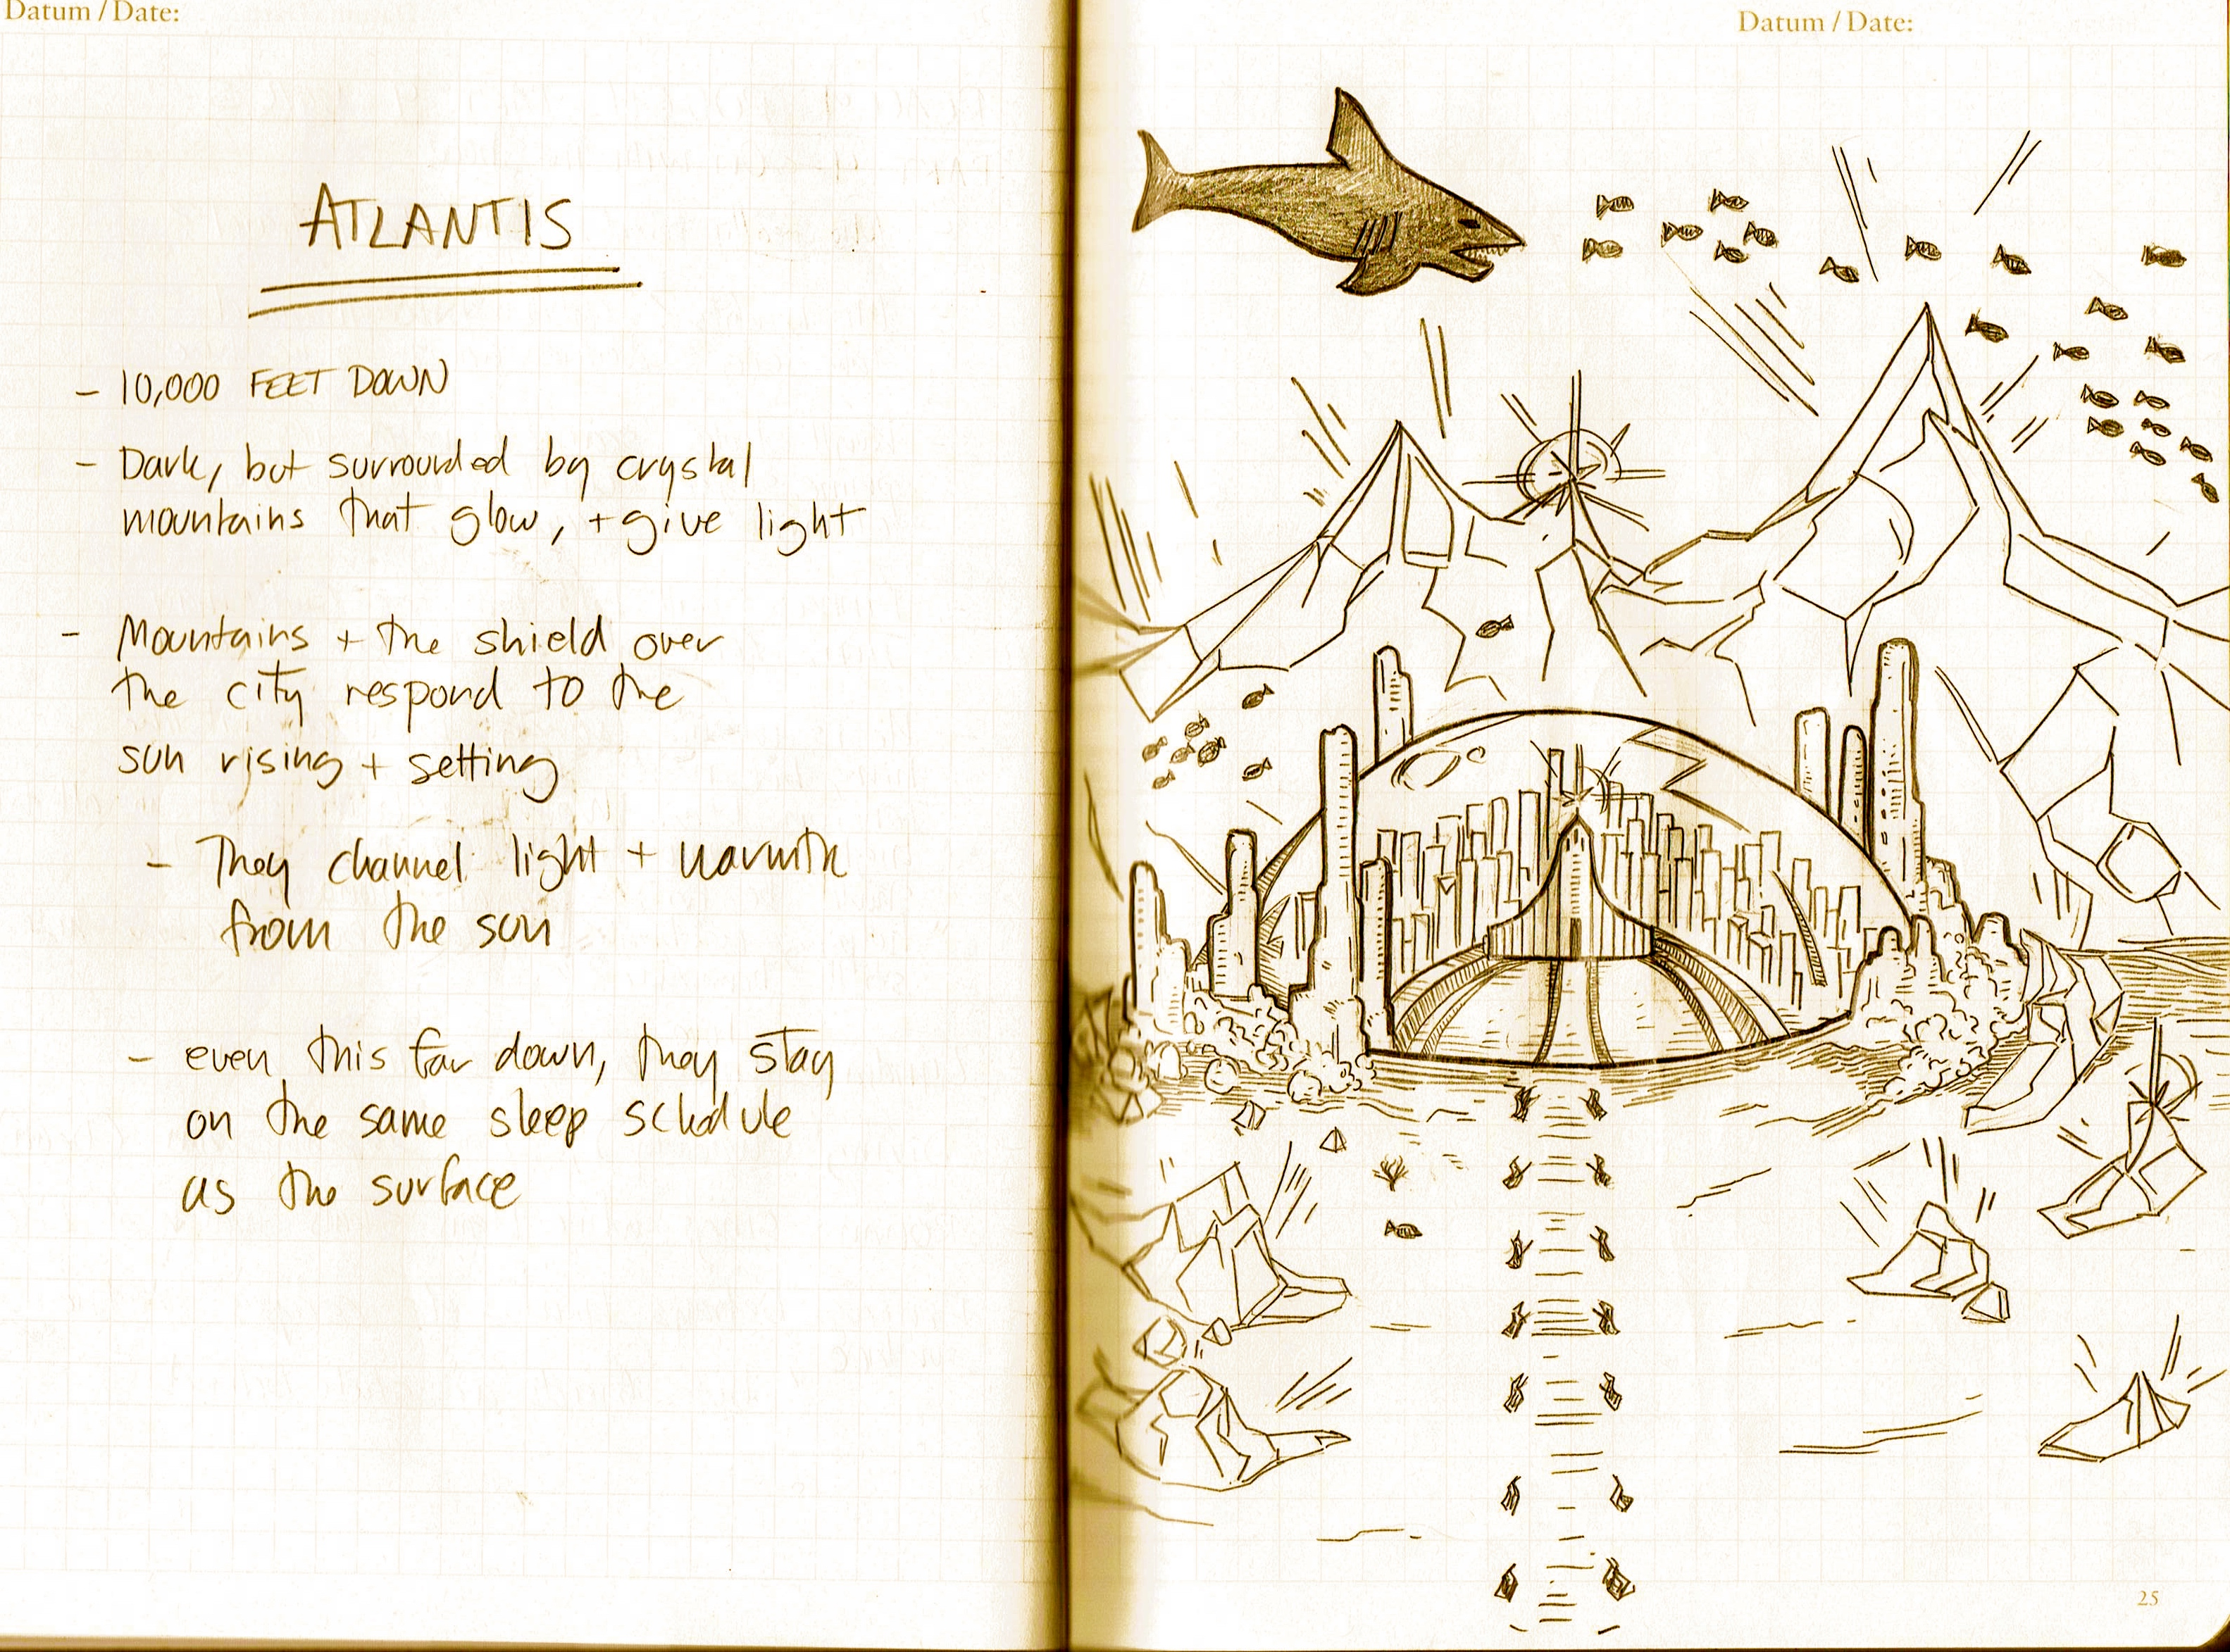 Atlantis (early sketch)